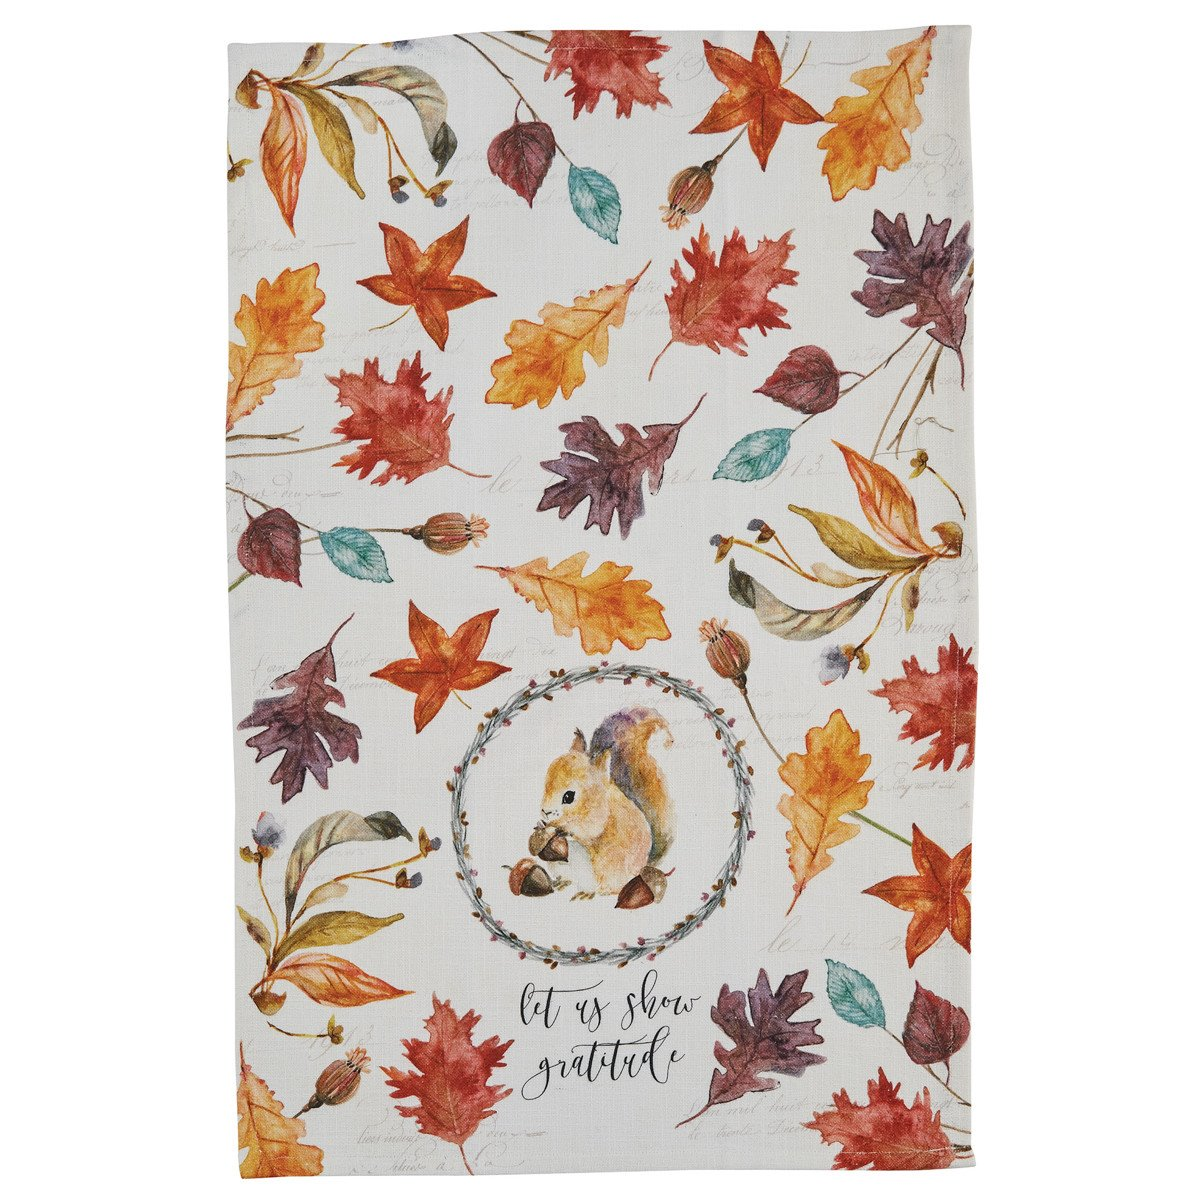 Harvest Home Squirrel Dishtowel